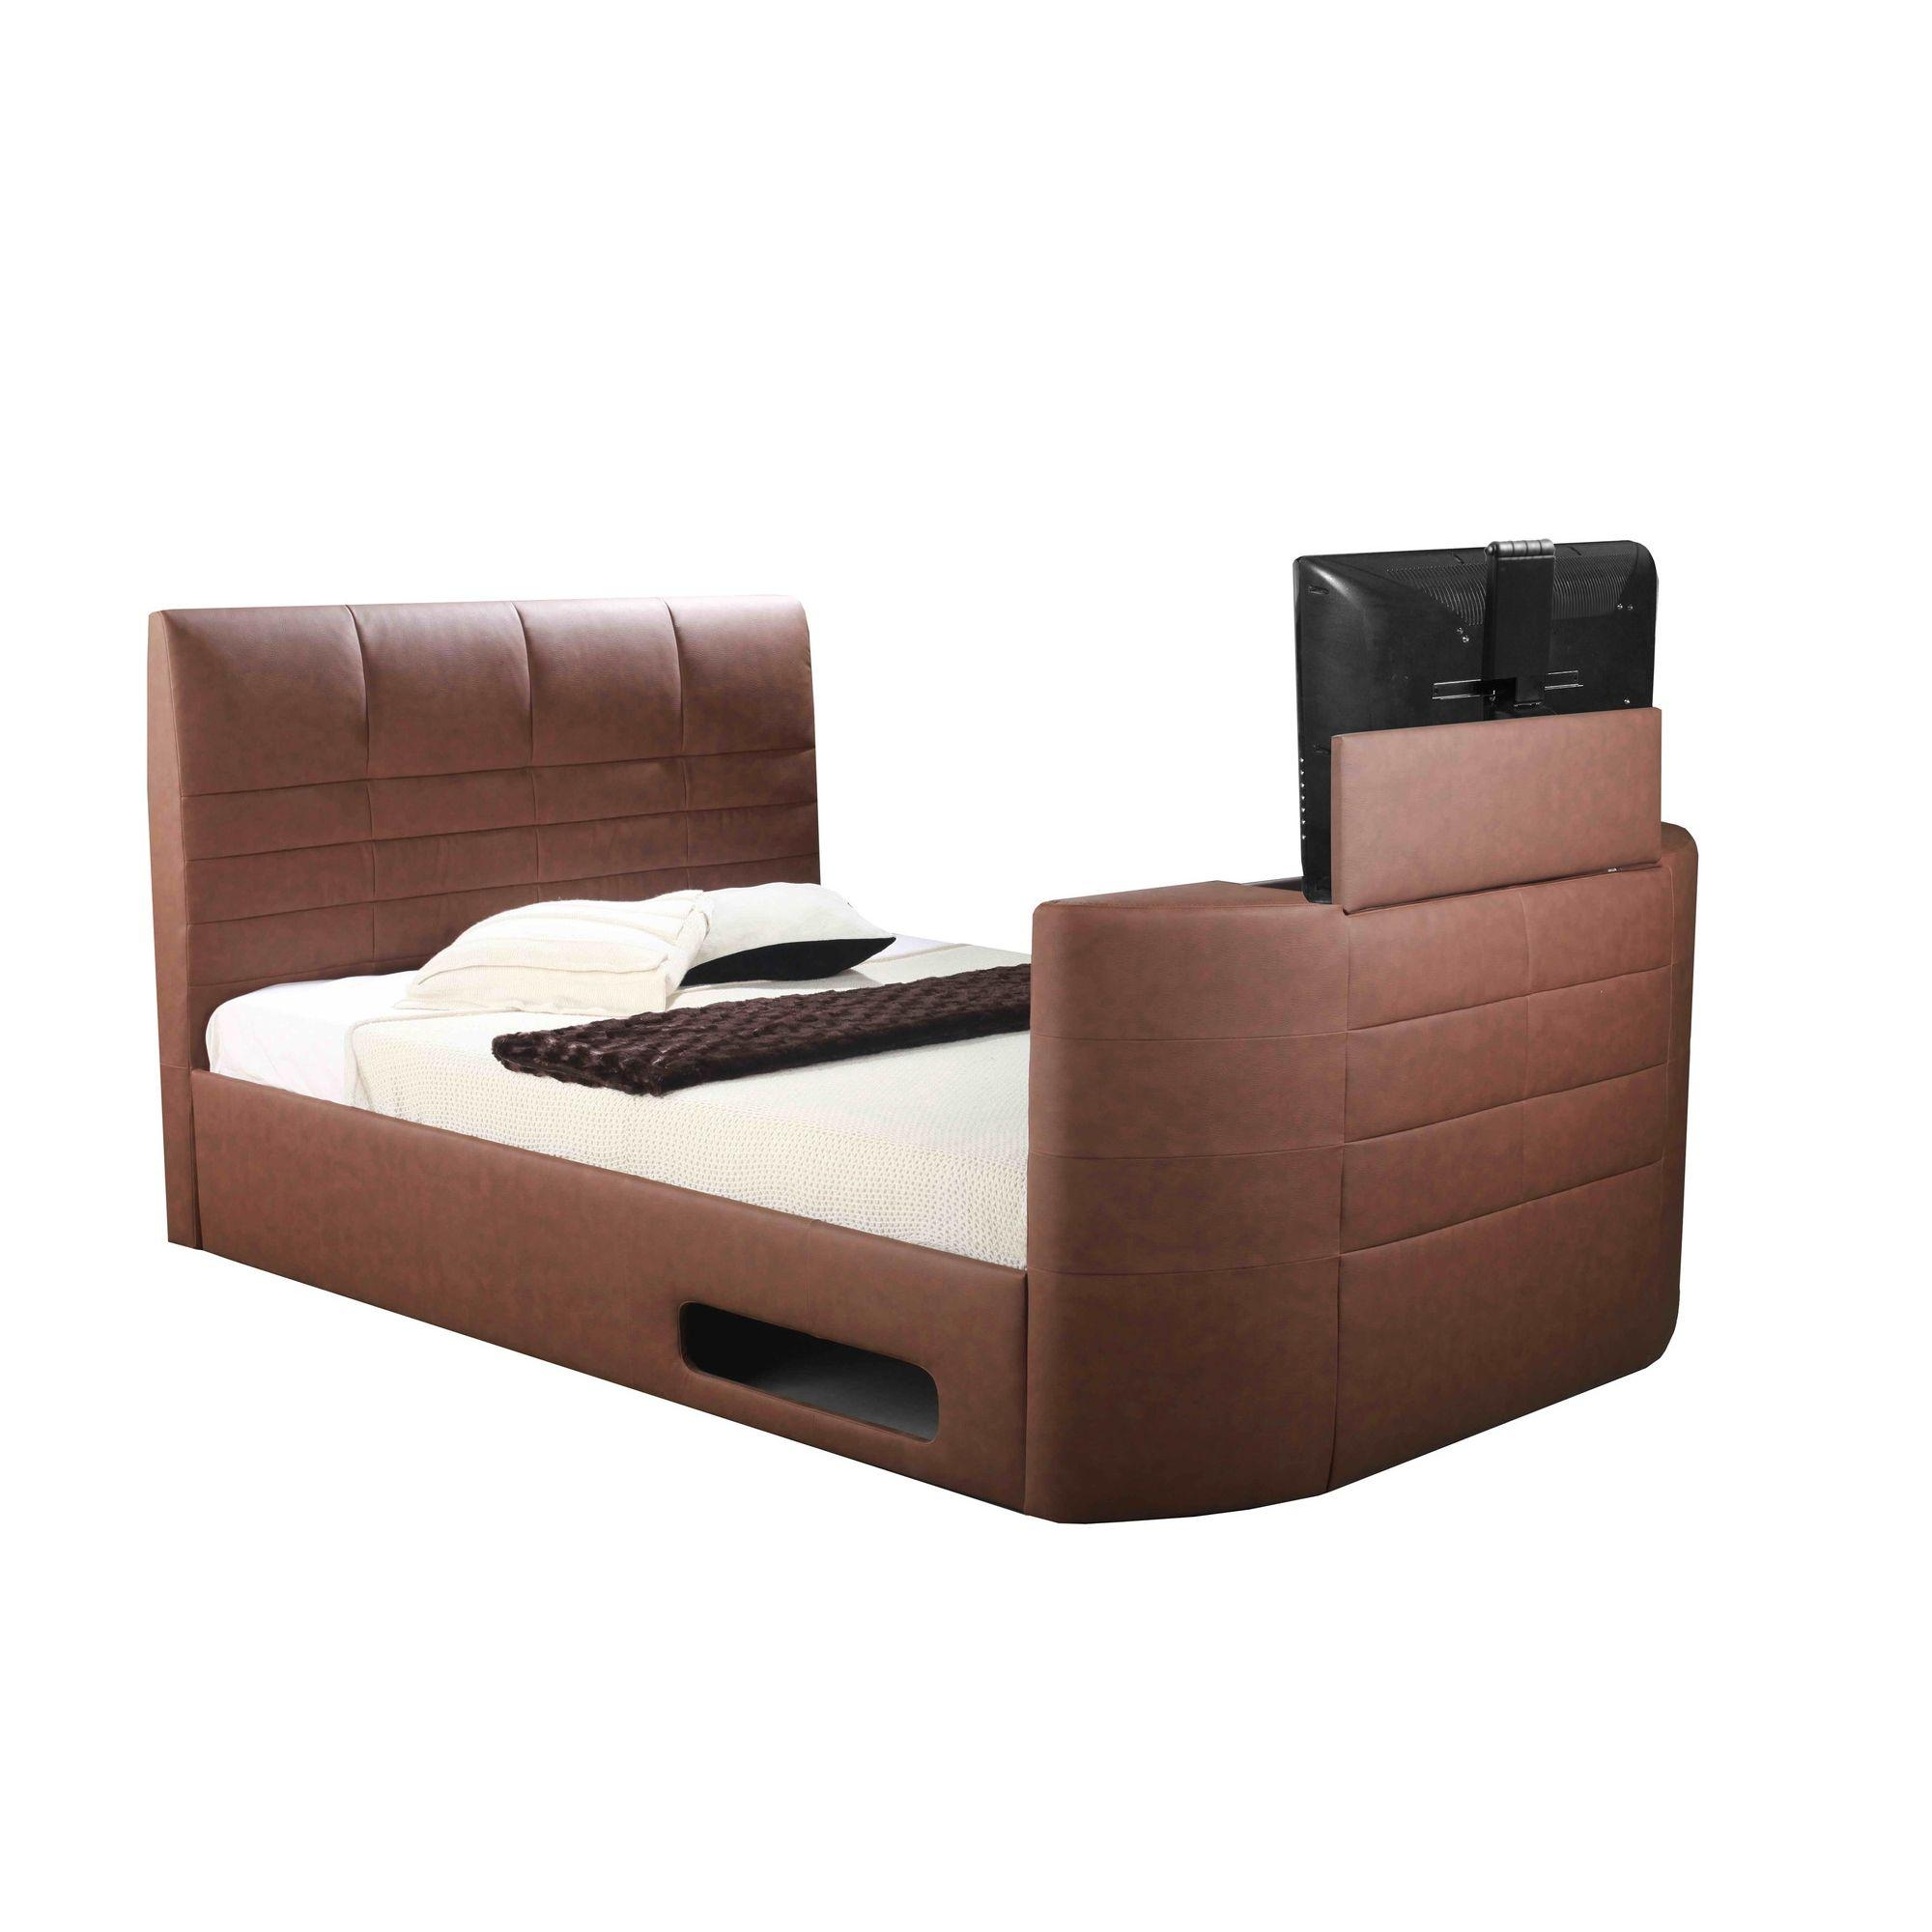 dfs recliner sofa bed bunk electric beds lampo motion from milano bedding is a ...